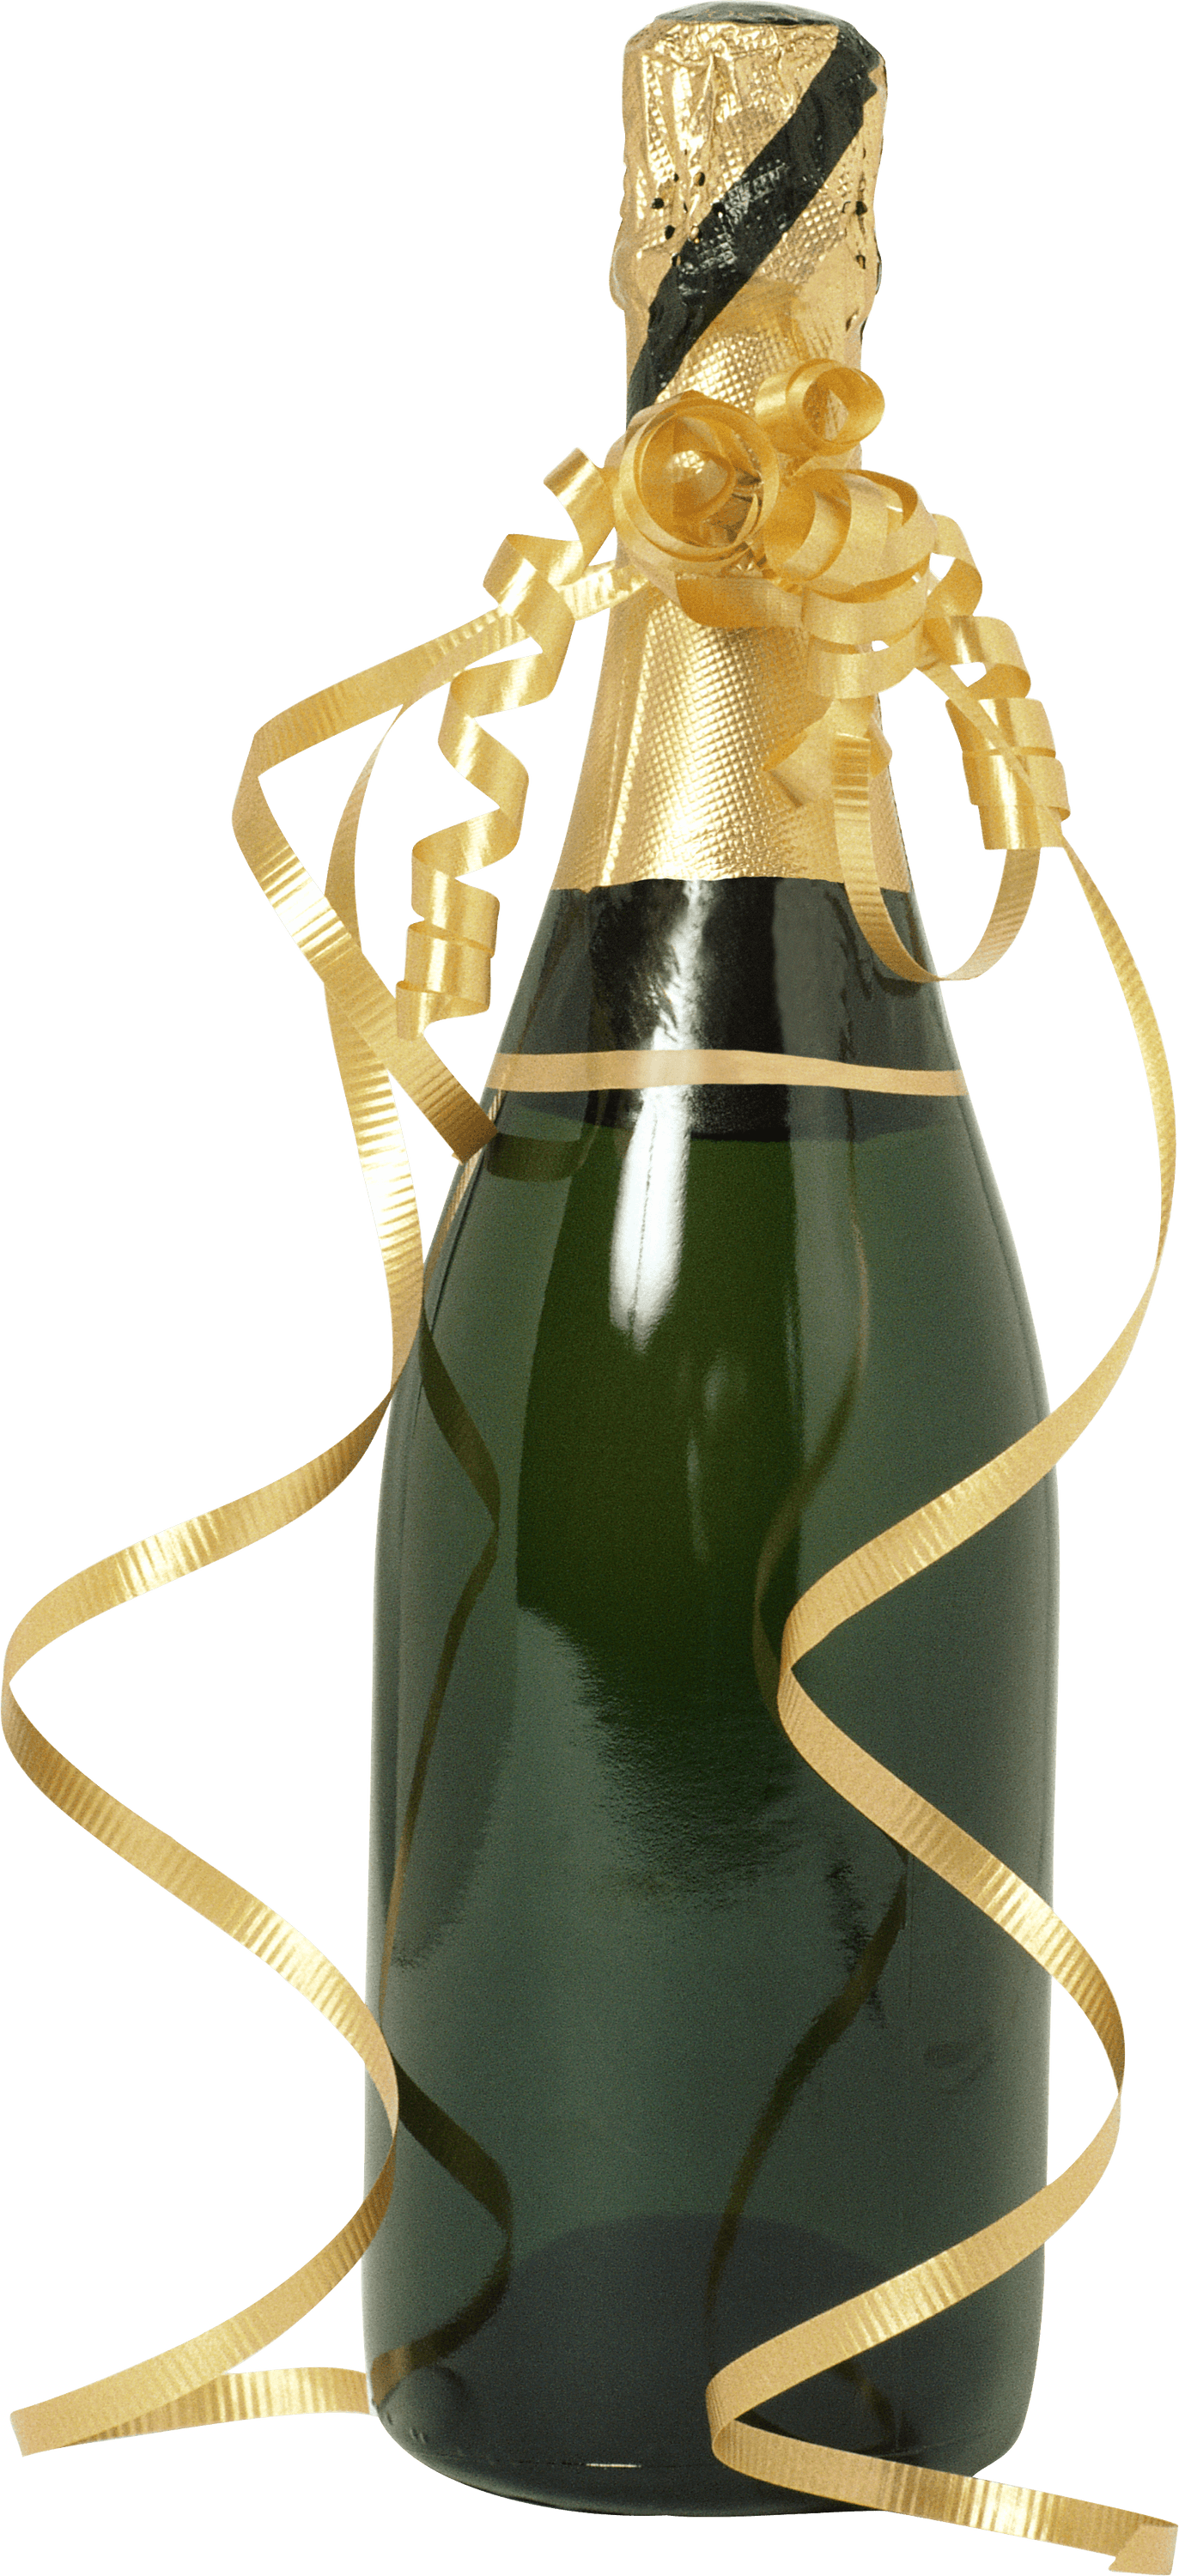 Champaign clipart champagne bottle. Gift transparent png stickpng